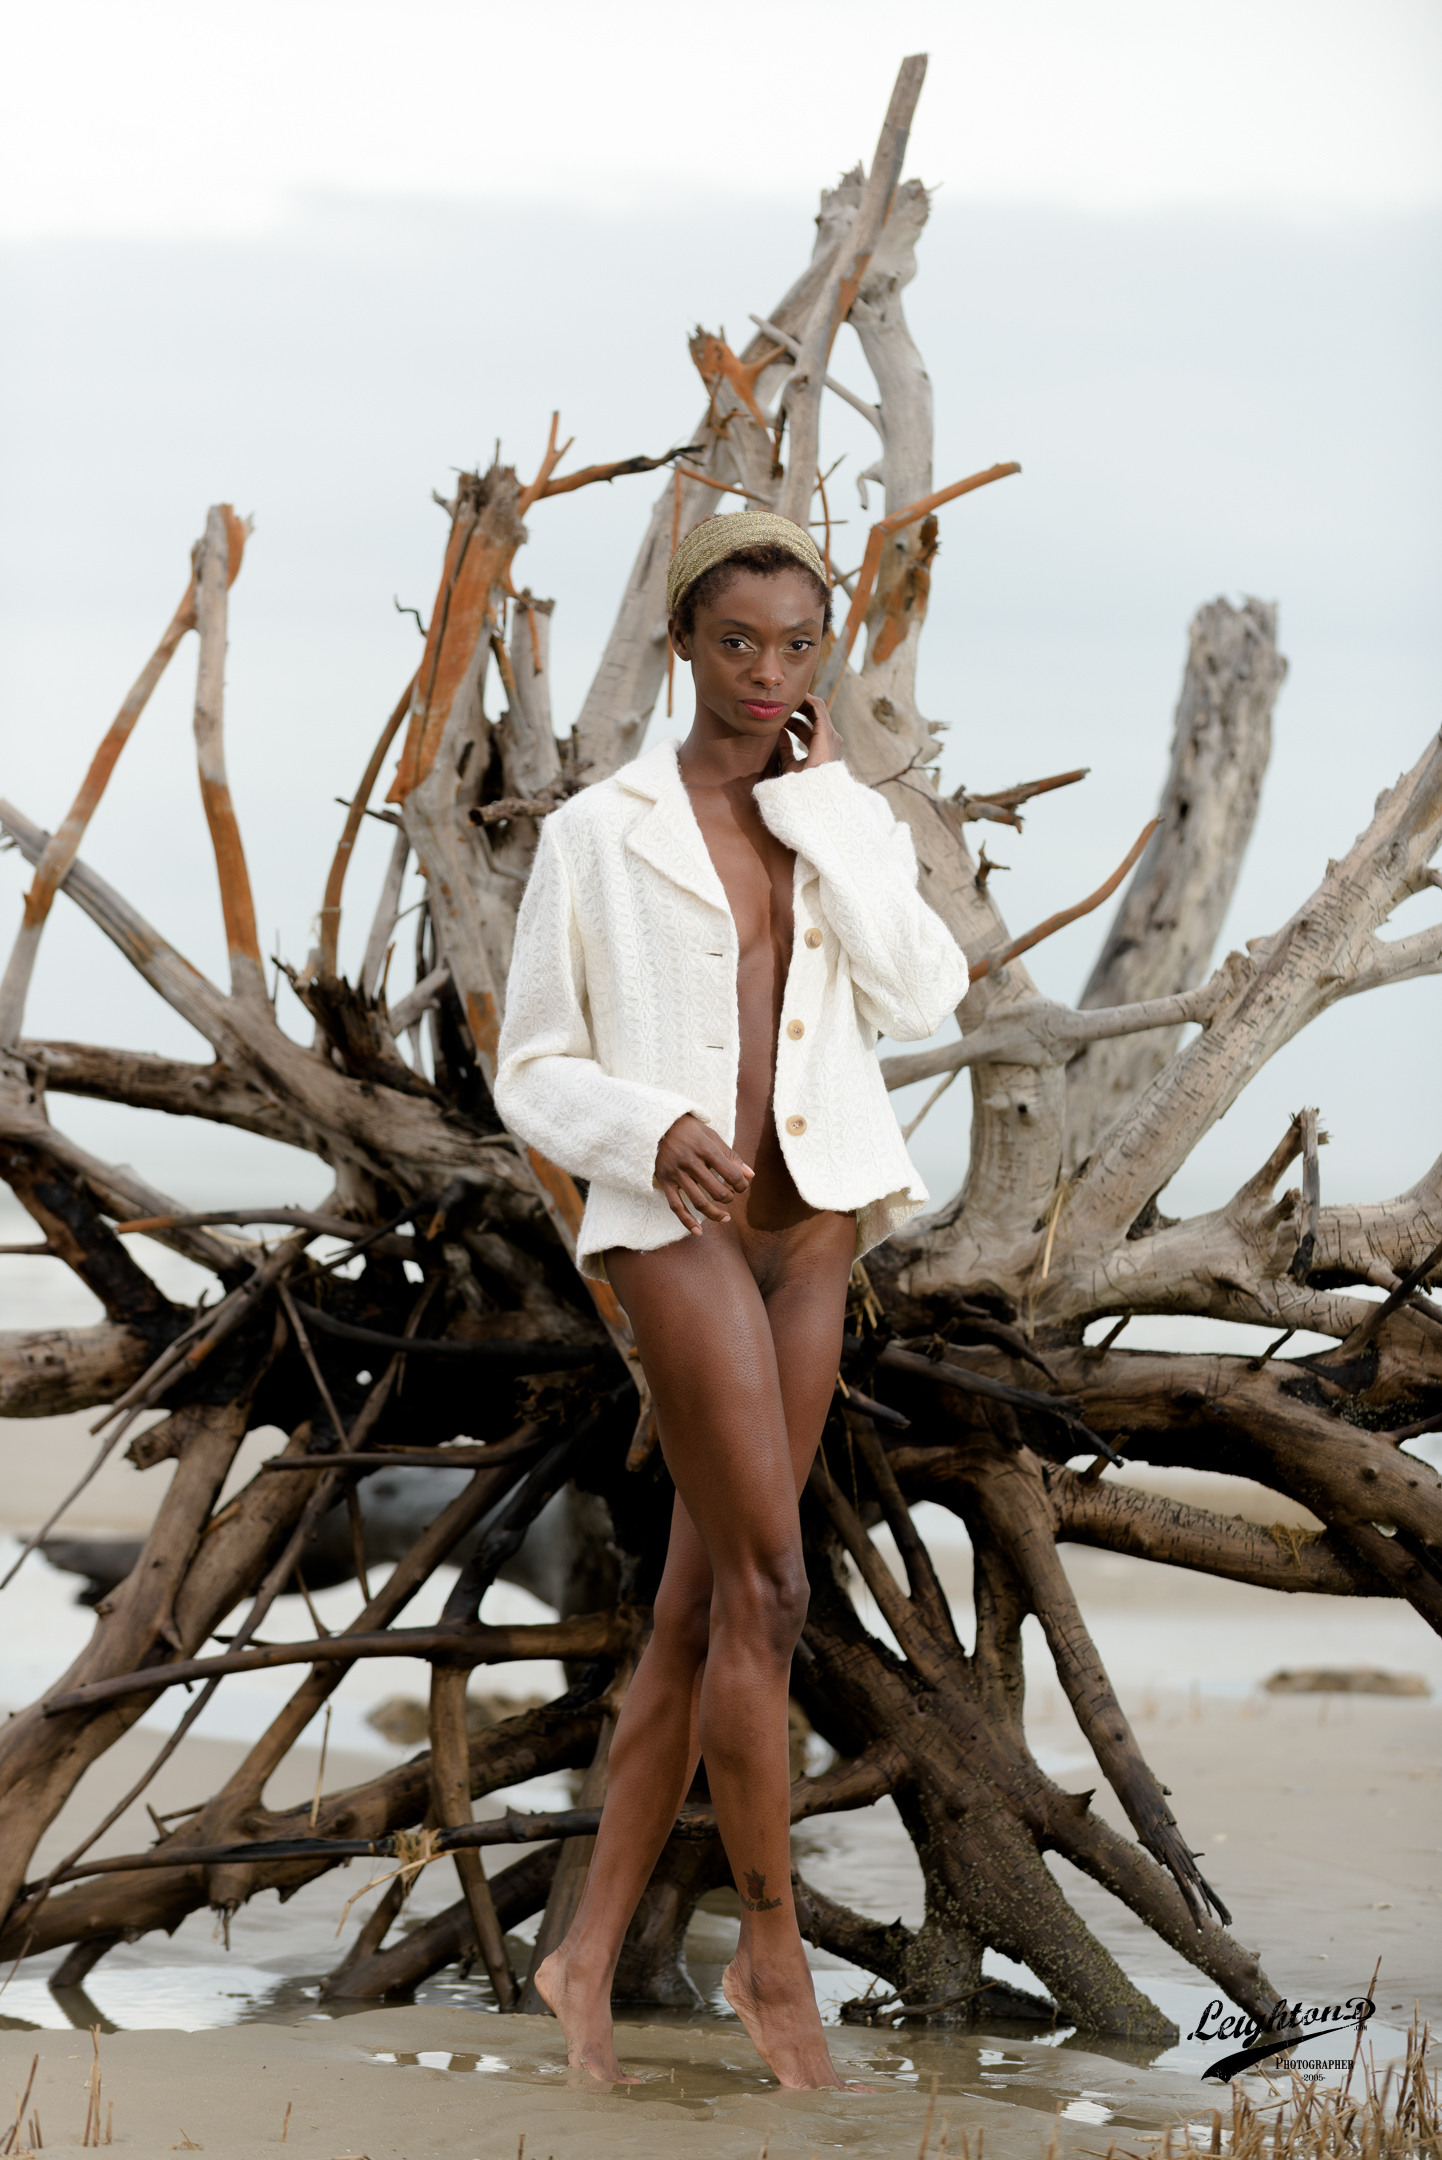 Shante wearing a coat from the photographer's collection